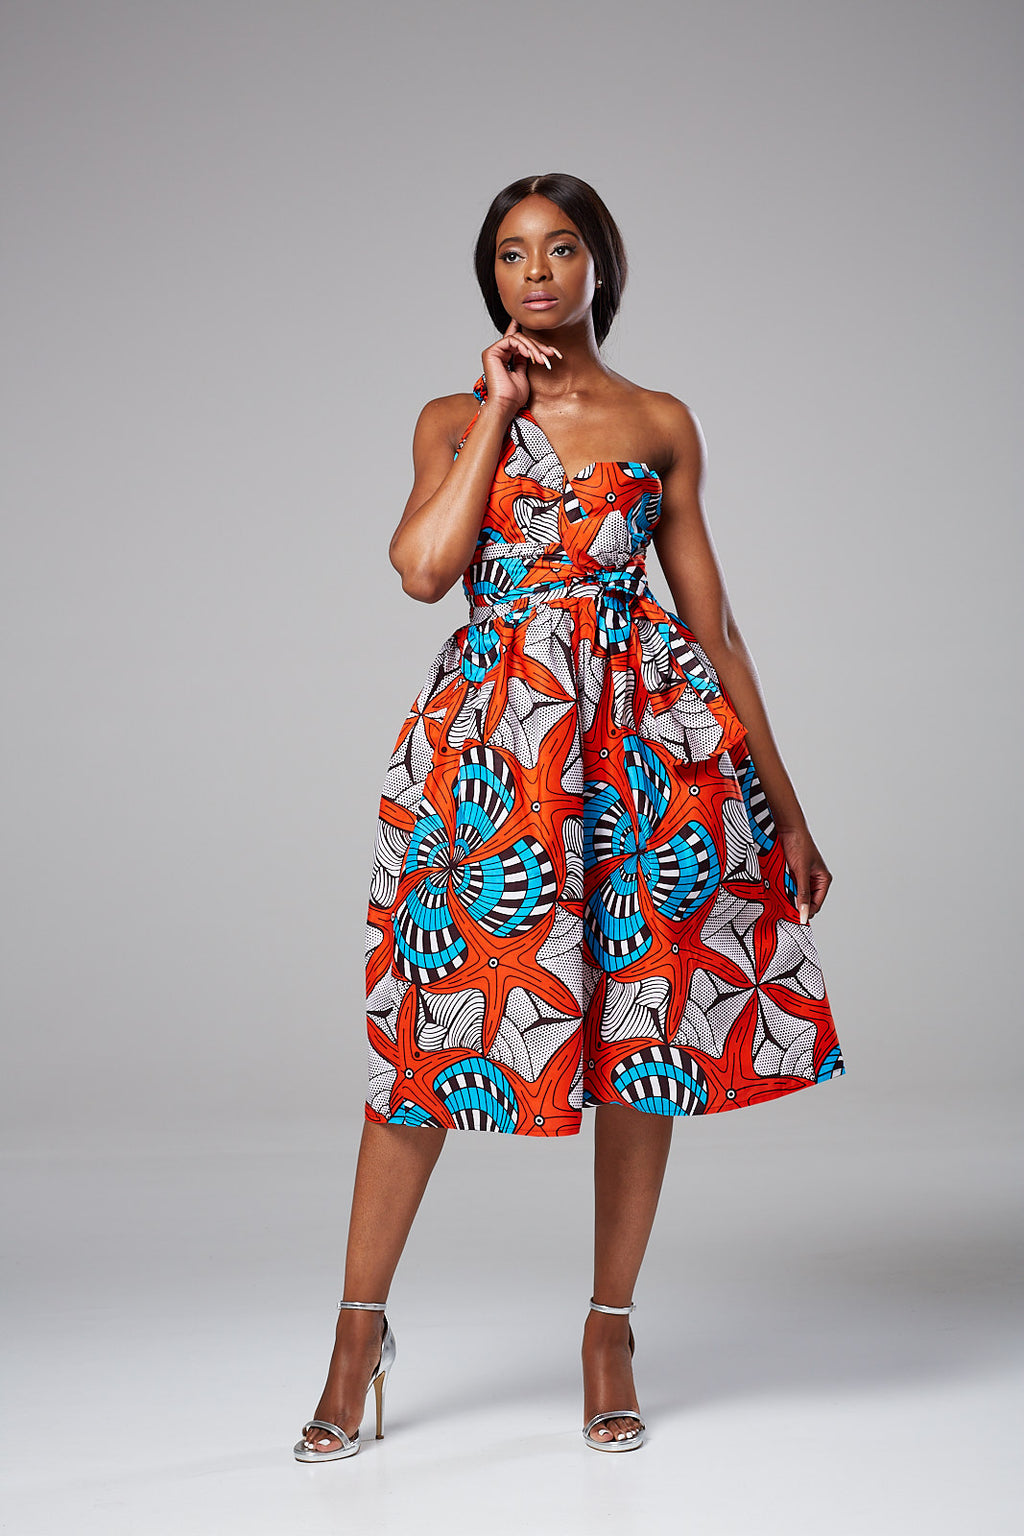 5601be28567d2 L'AVIYE - African Clothing For Women | African Dresses, African Skirts